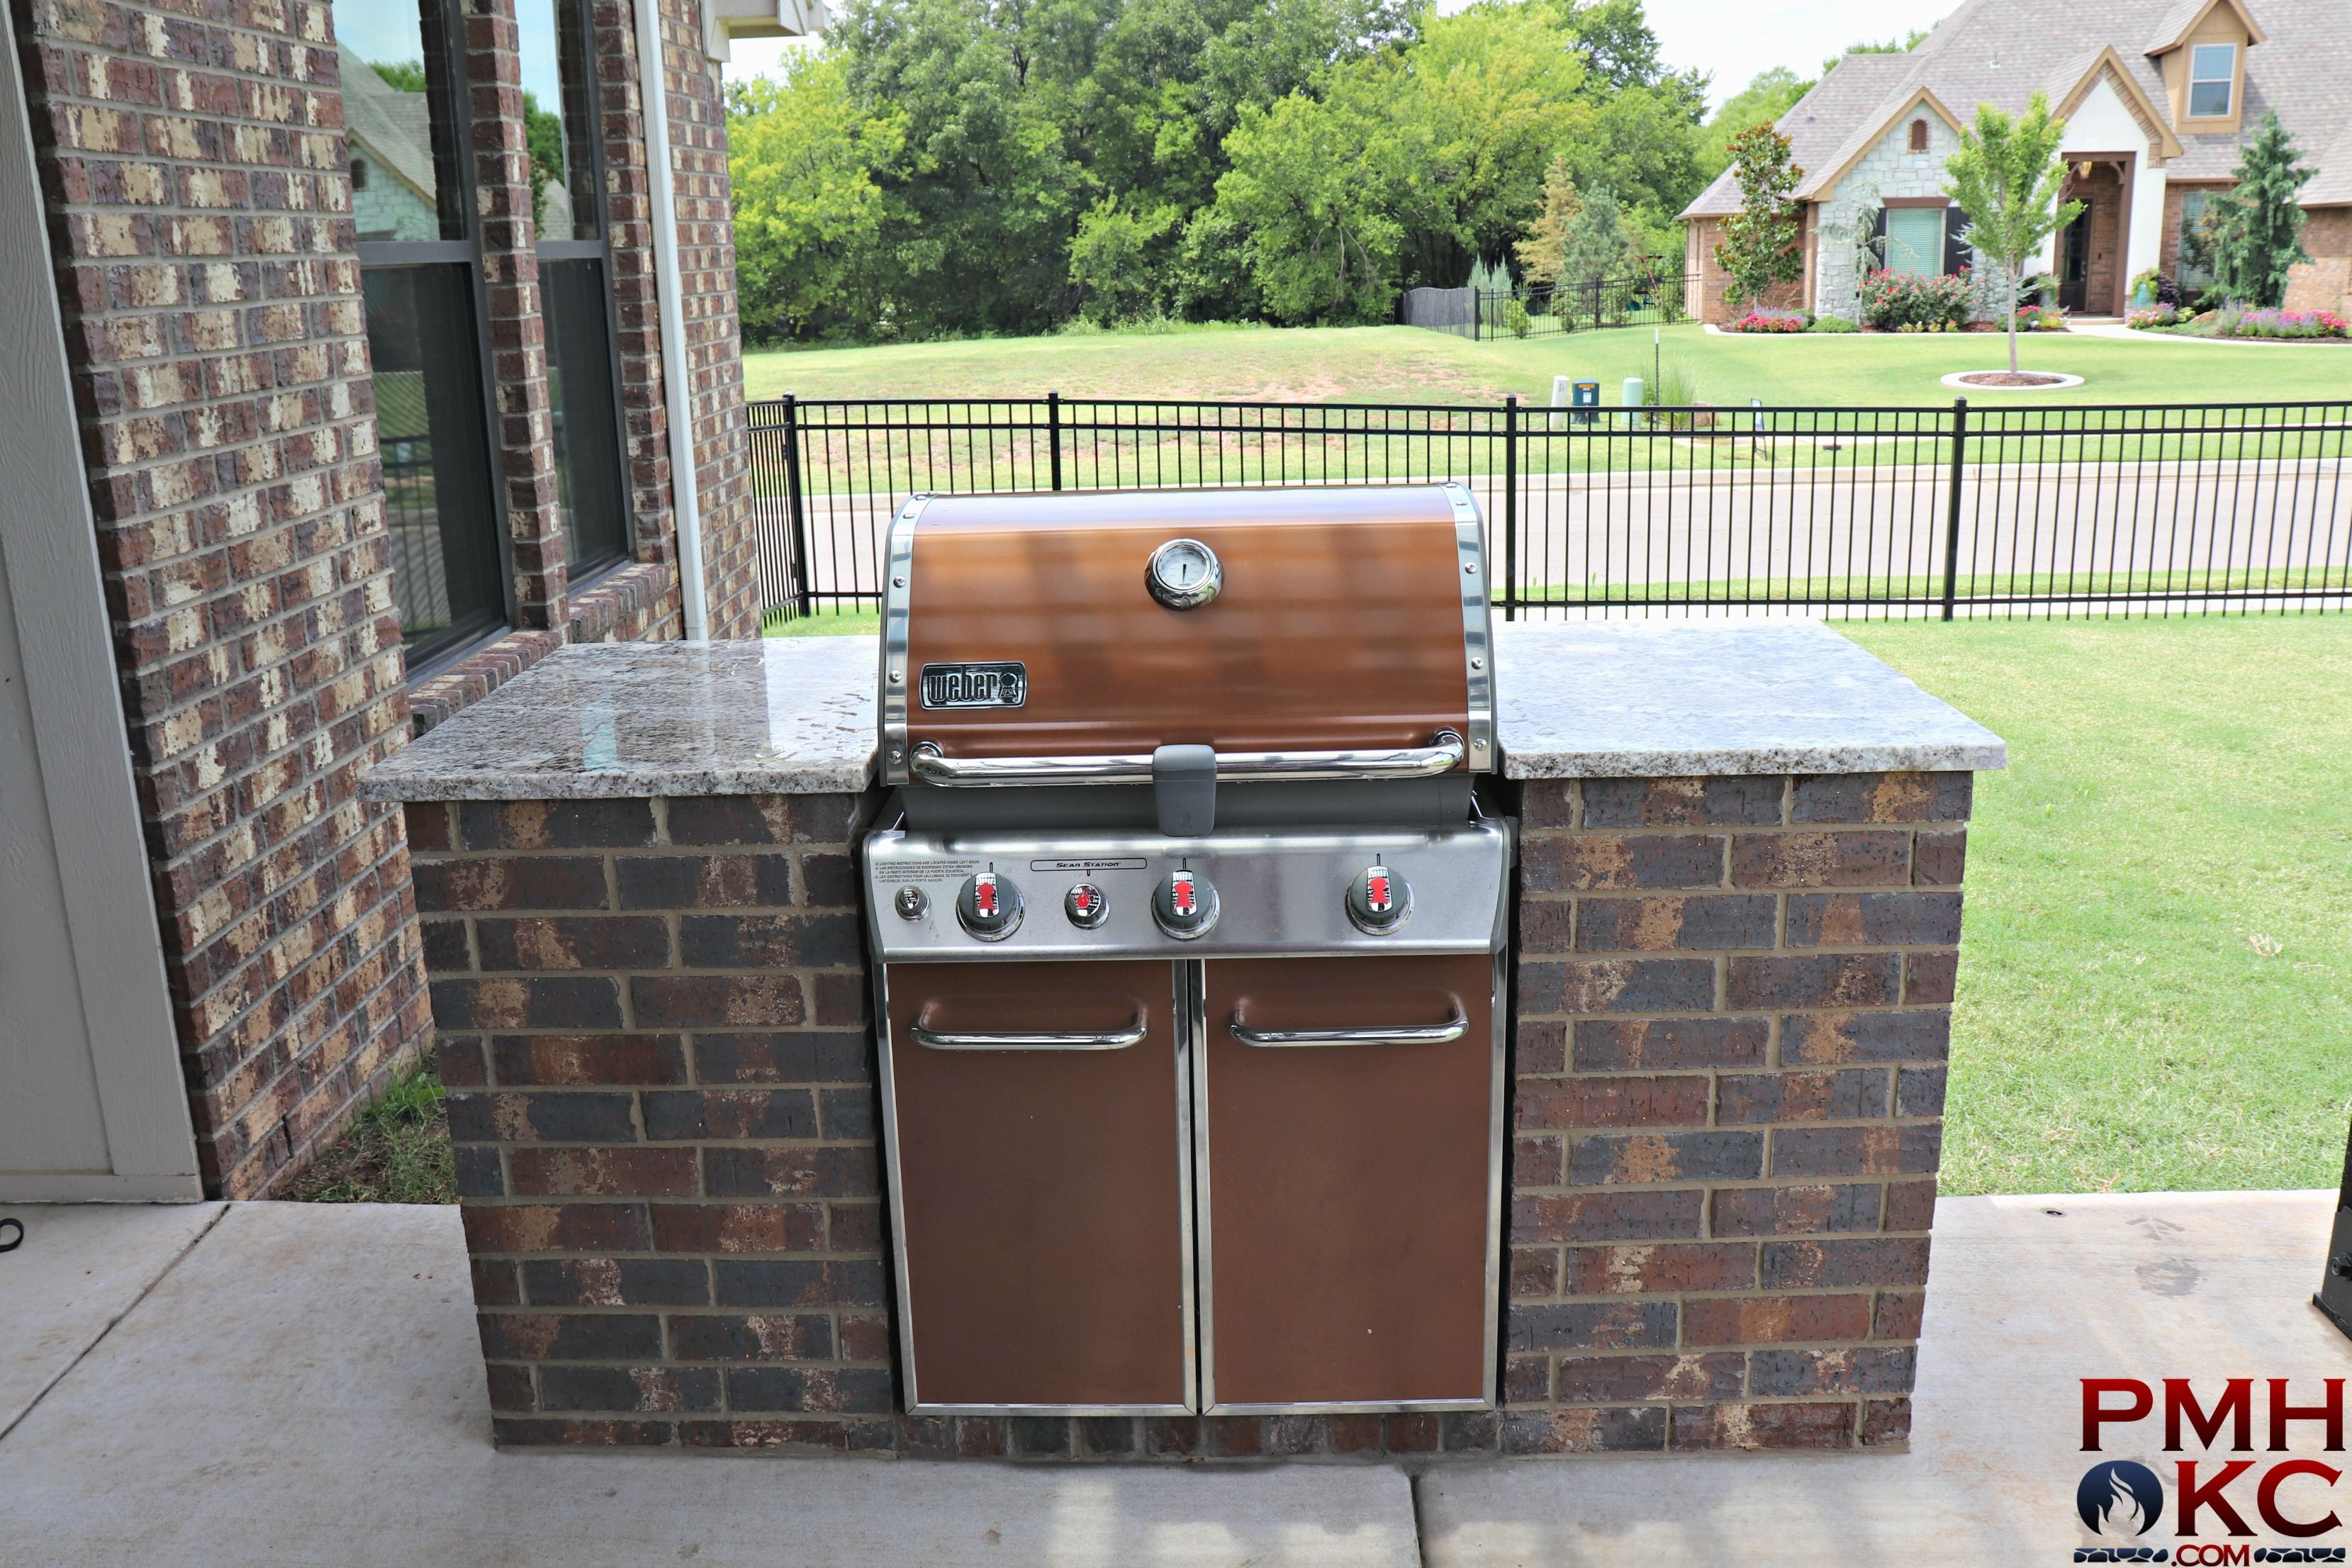 Outdoor Kitchens Okc Okc Pergolas Pmh Okc Outdoor Kitchen